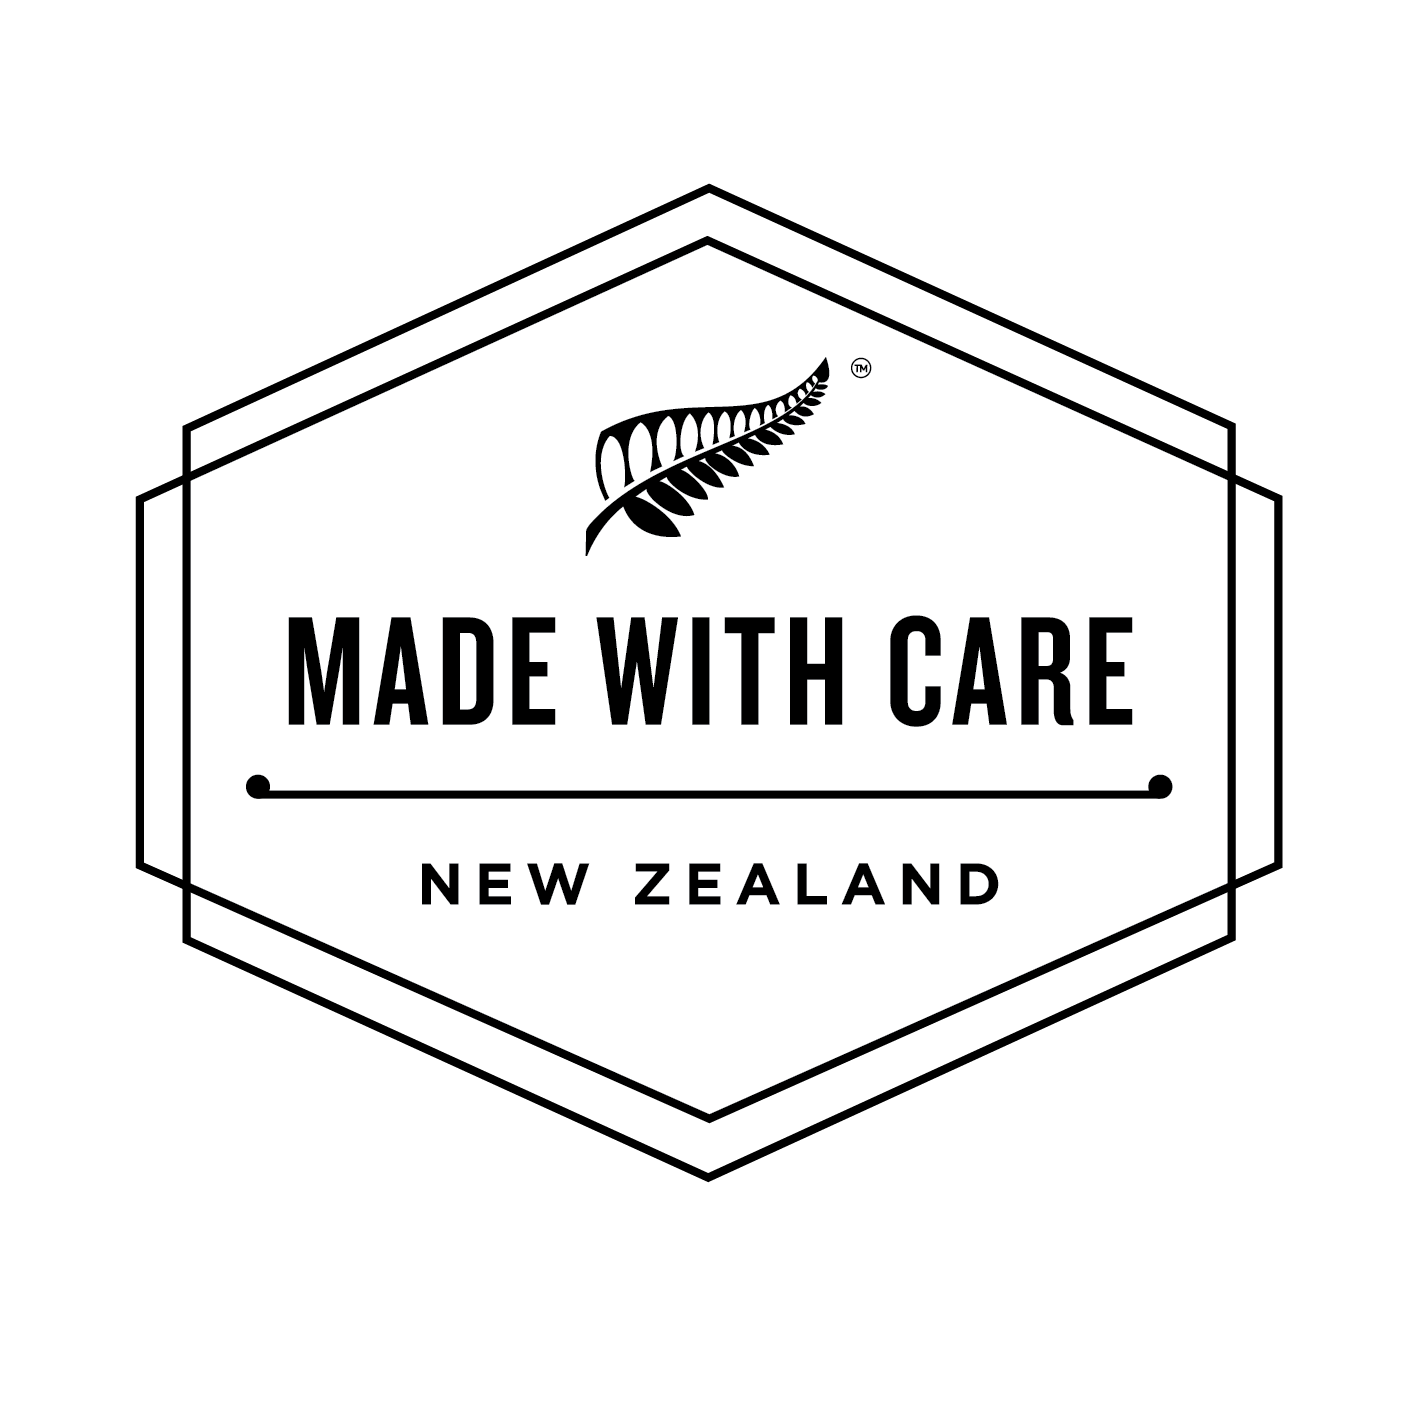 newzealand.com Made With Care